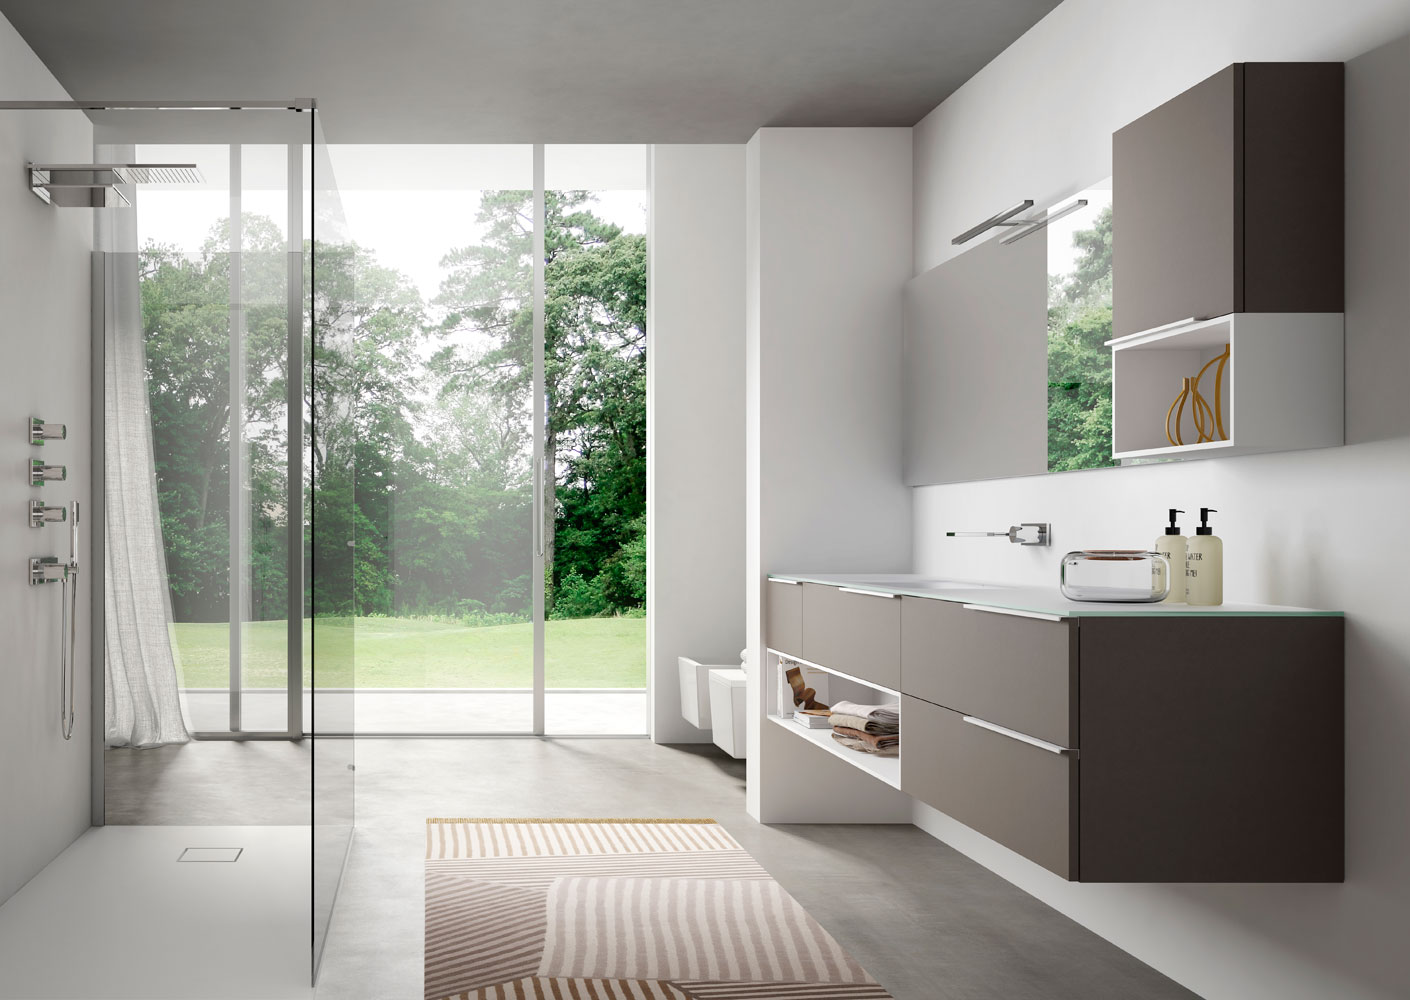 Mobili bagno moderni my time ideagroup for Layout di casa moderno